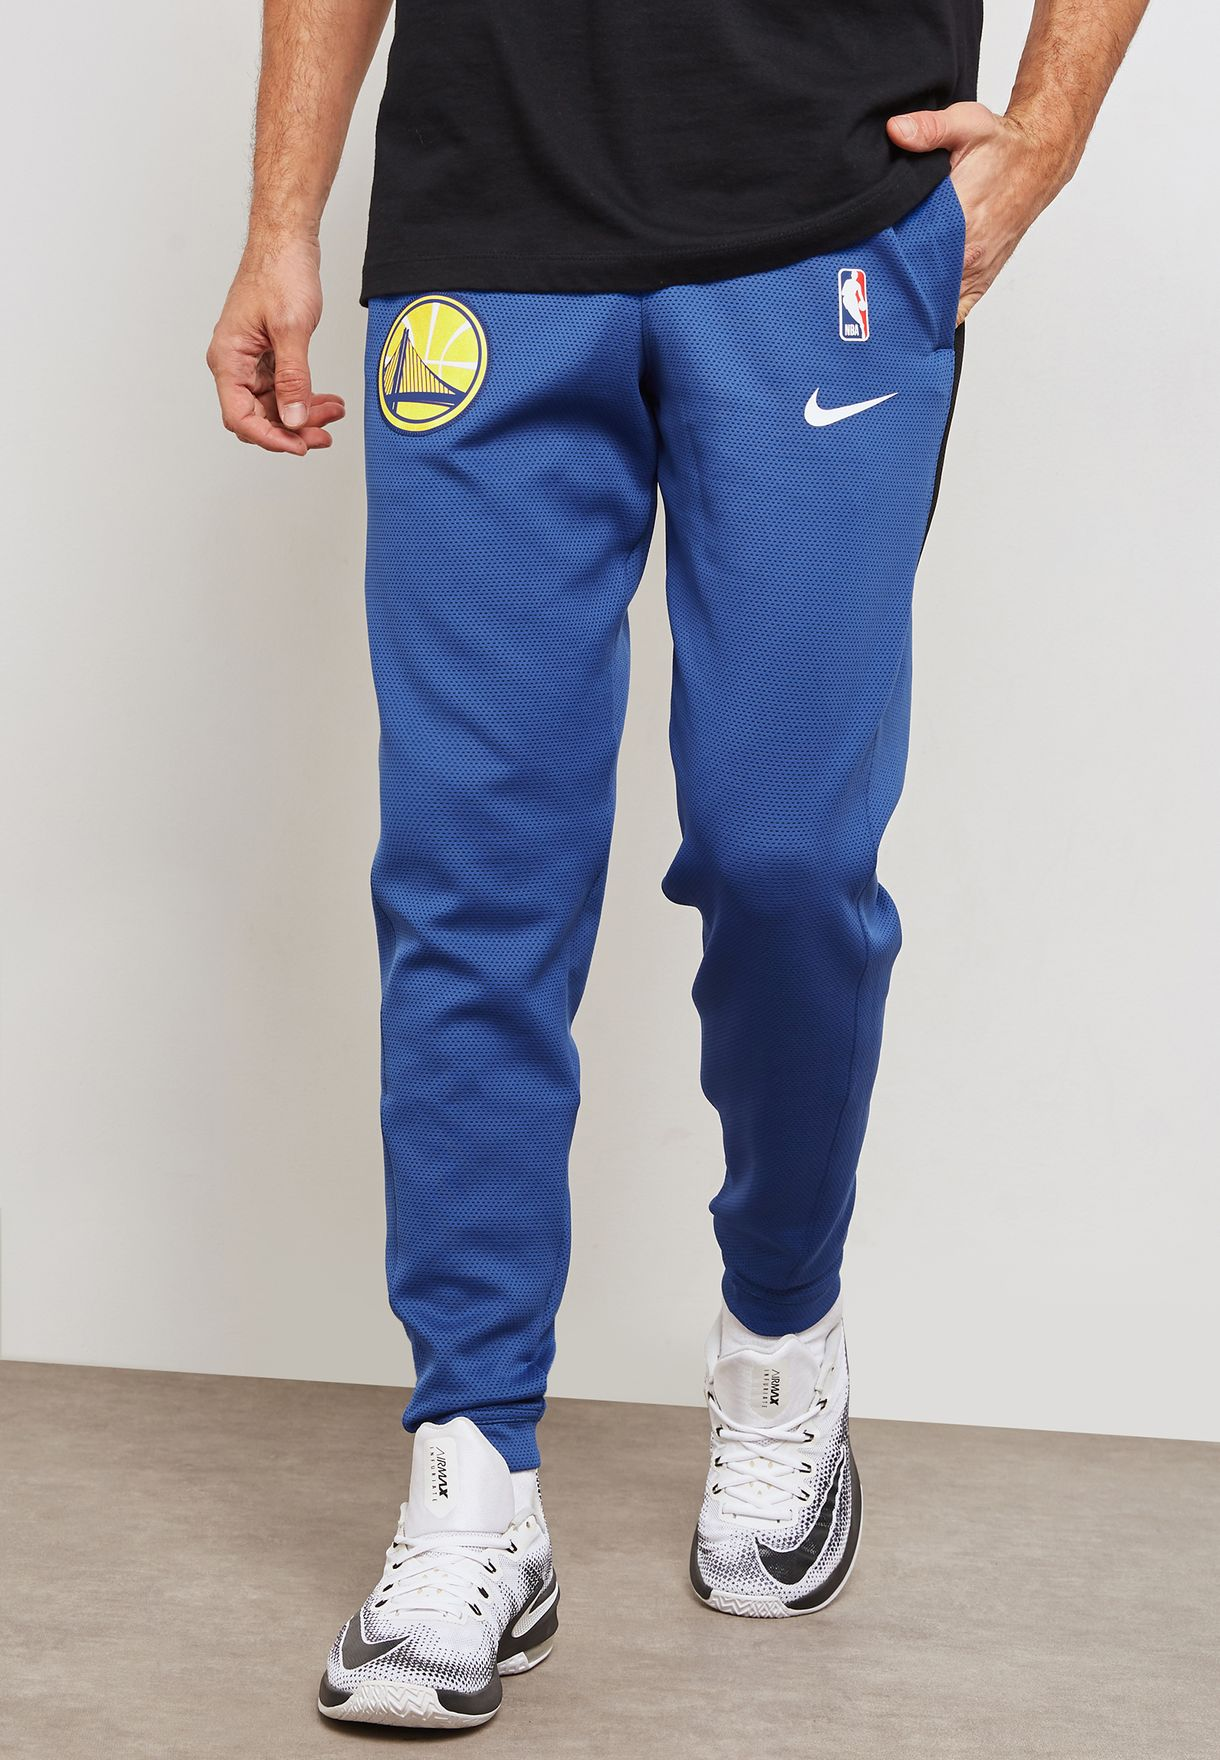 ab32f37f2 Nike NBA Golden State Warriors Therma Flex Showtime Pants - NBA Shop Golden  State Warriors Merchandise - Superfanas.lt